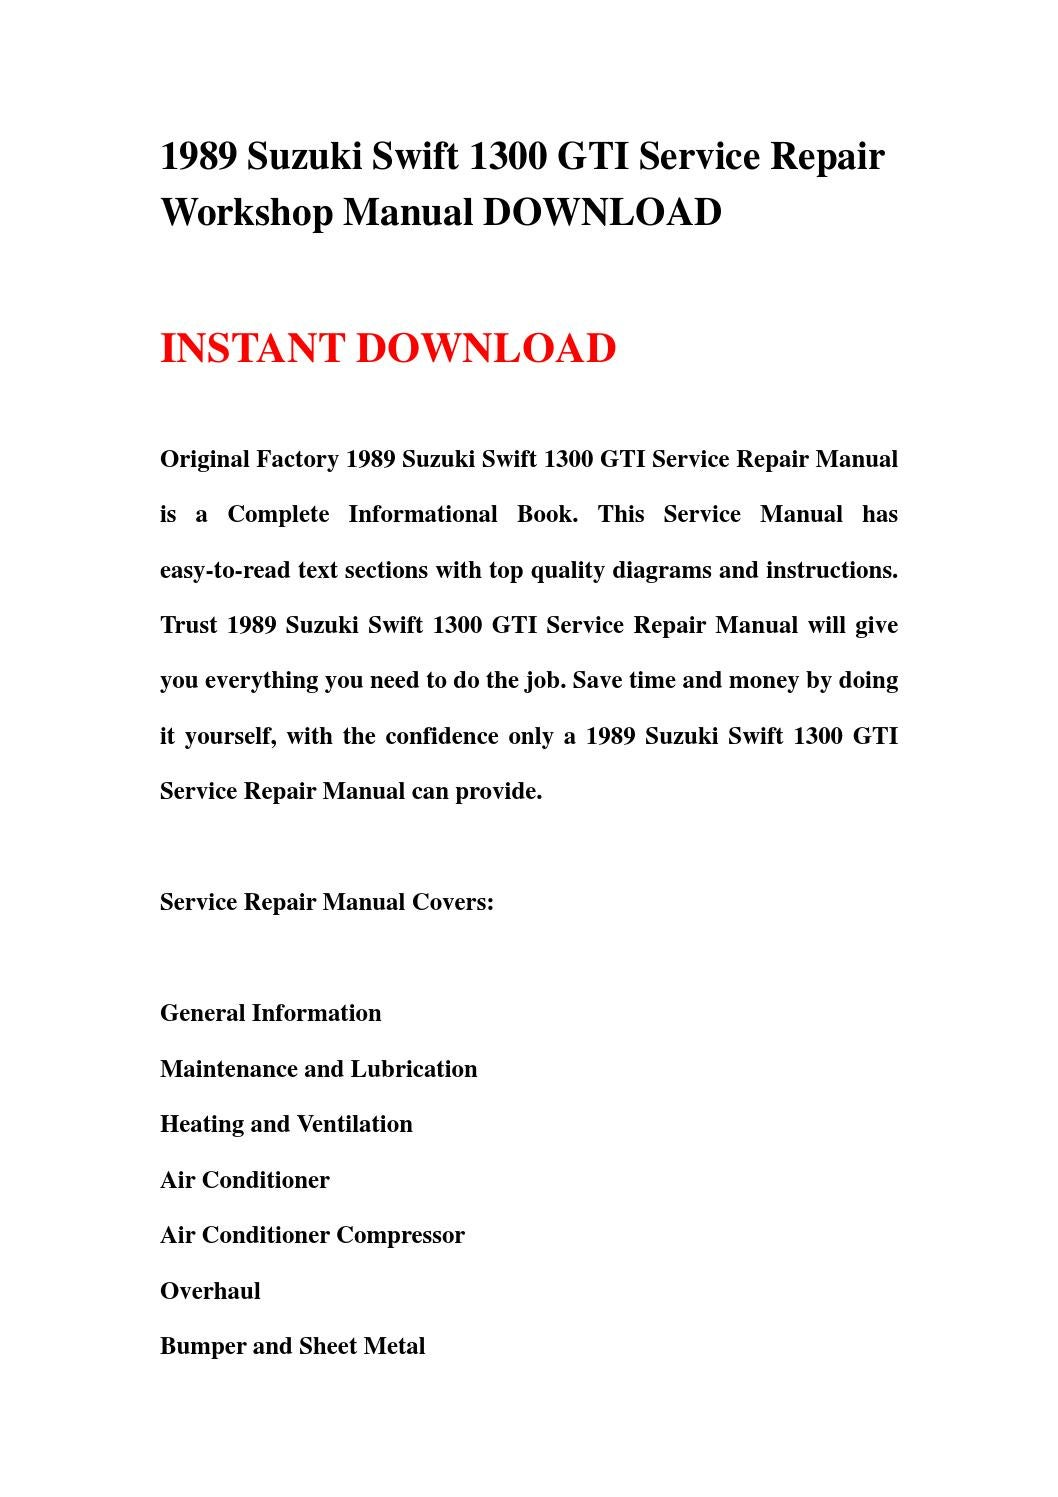 hight resolution of 1989 suzuki swift 1300 gti service repair workshop manual download by hews issuu